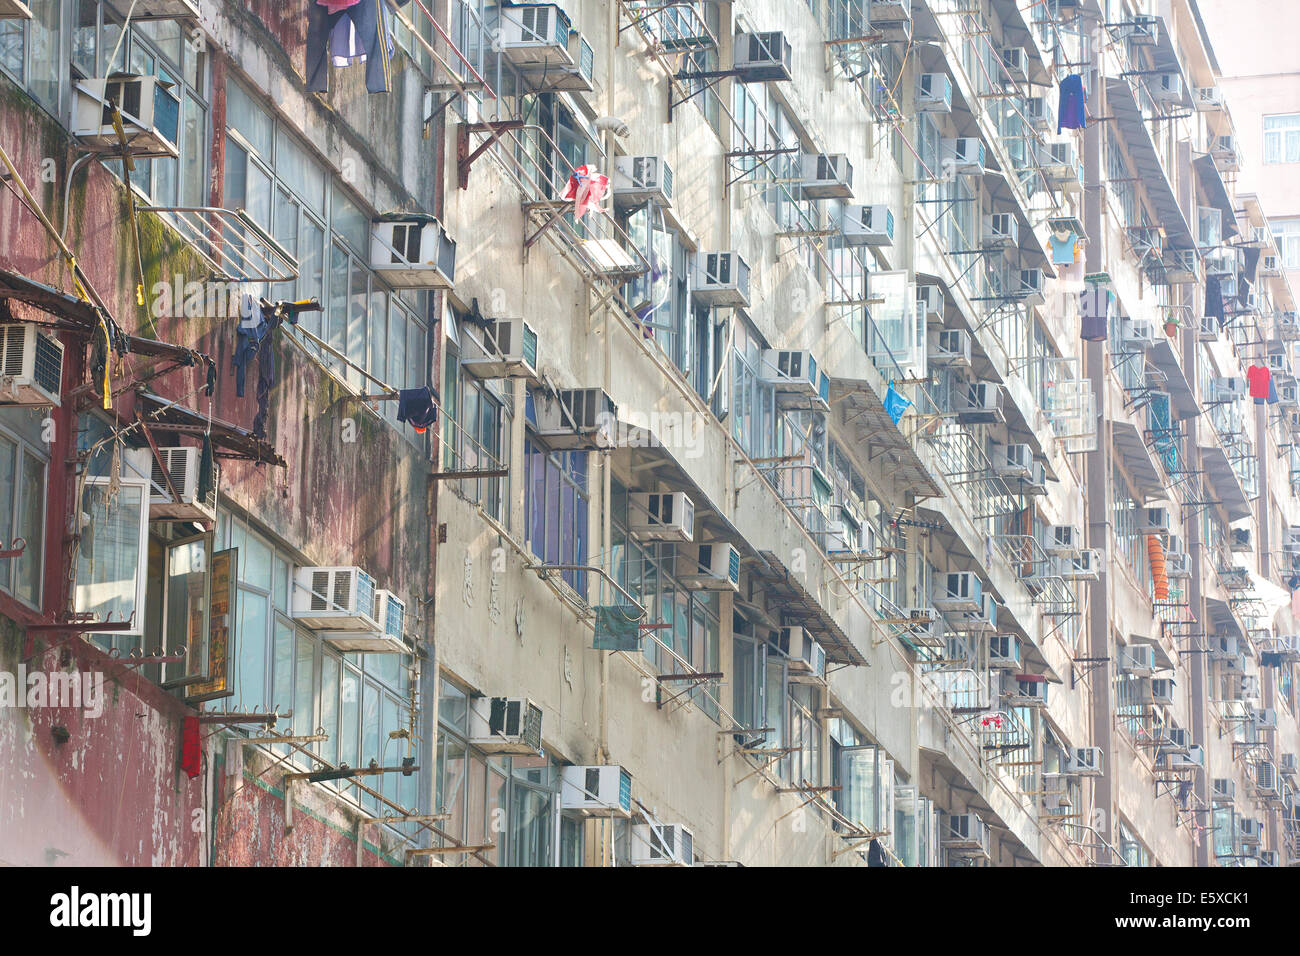 Dystopian Residential Apartment Building In Chun Yeung Street, Hong Kong. - Stock Image